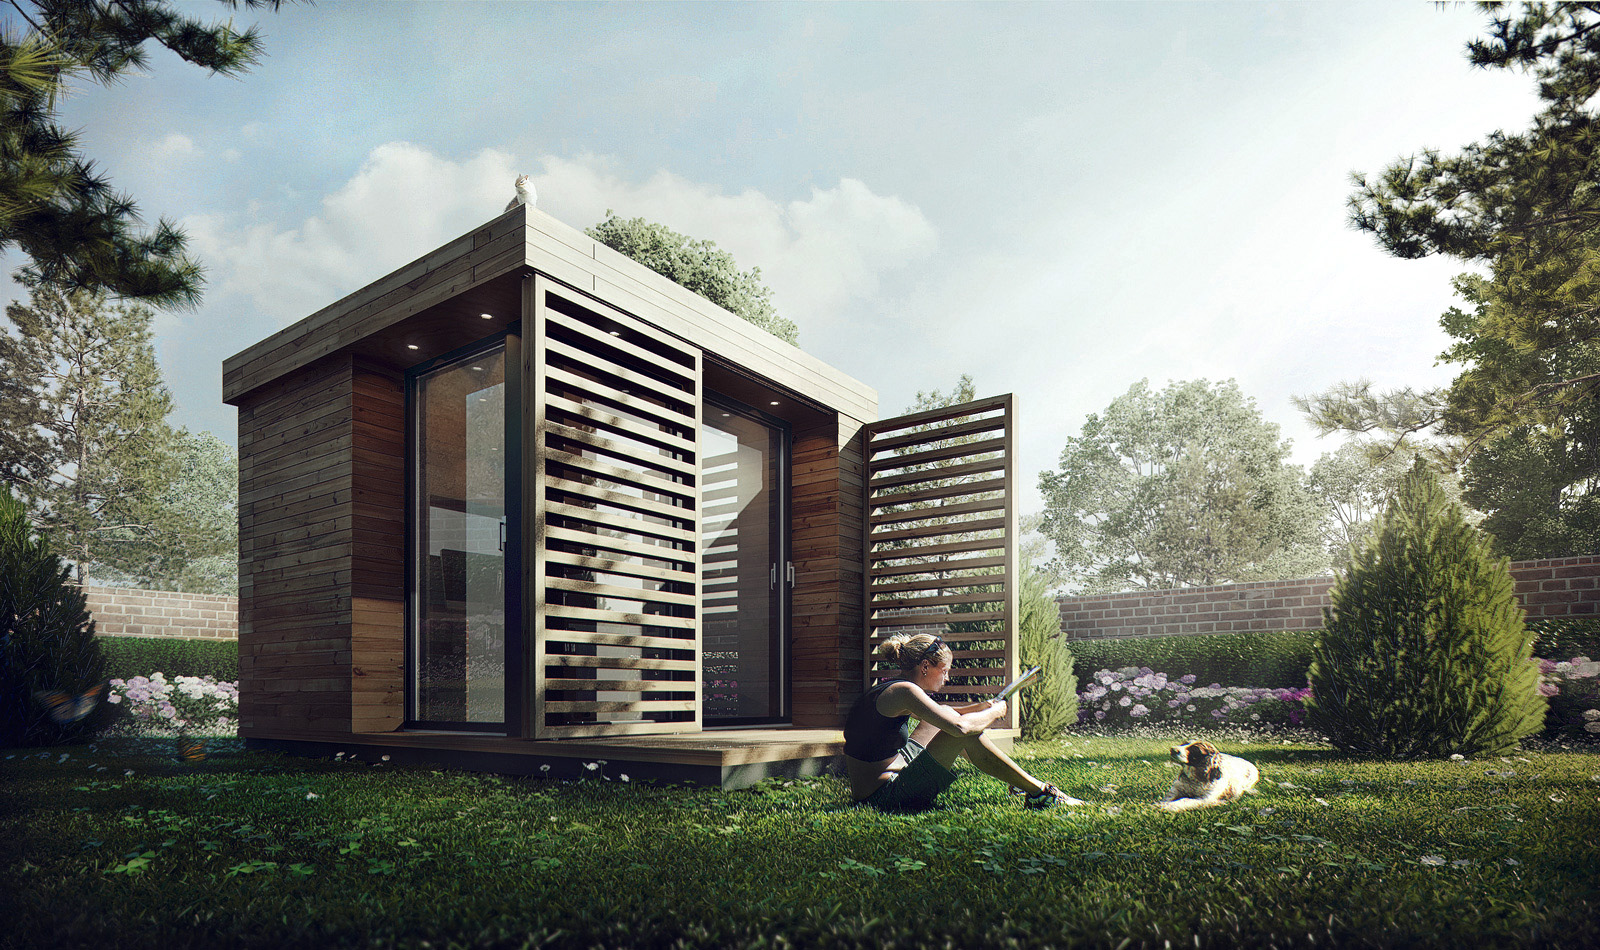 3D Visualization Garden Office Architectural Visualization